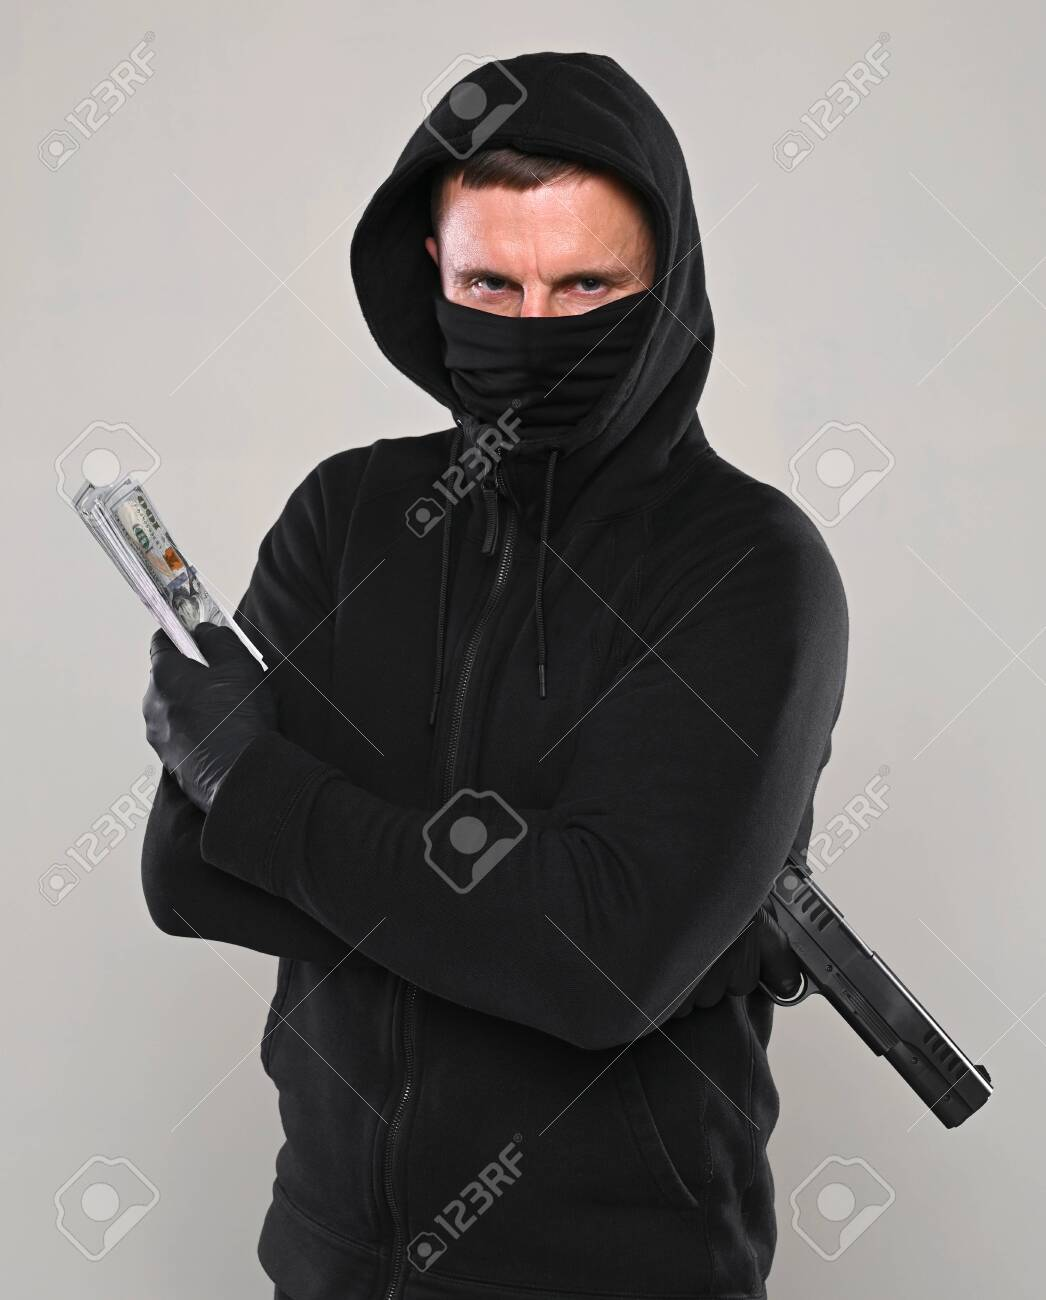 Man in black mask and hoody with a gun and pack of dollars over gray background - 143163093